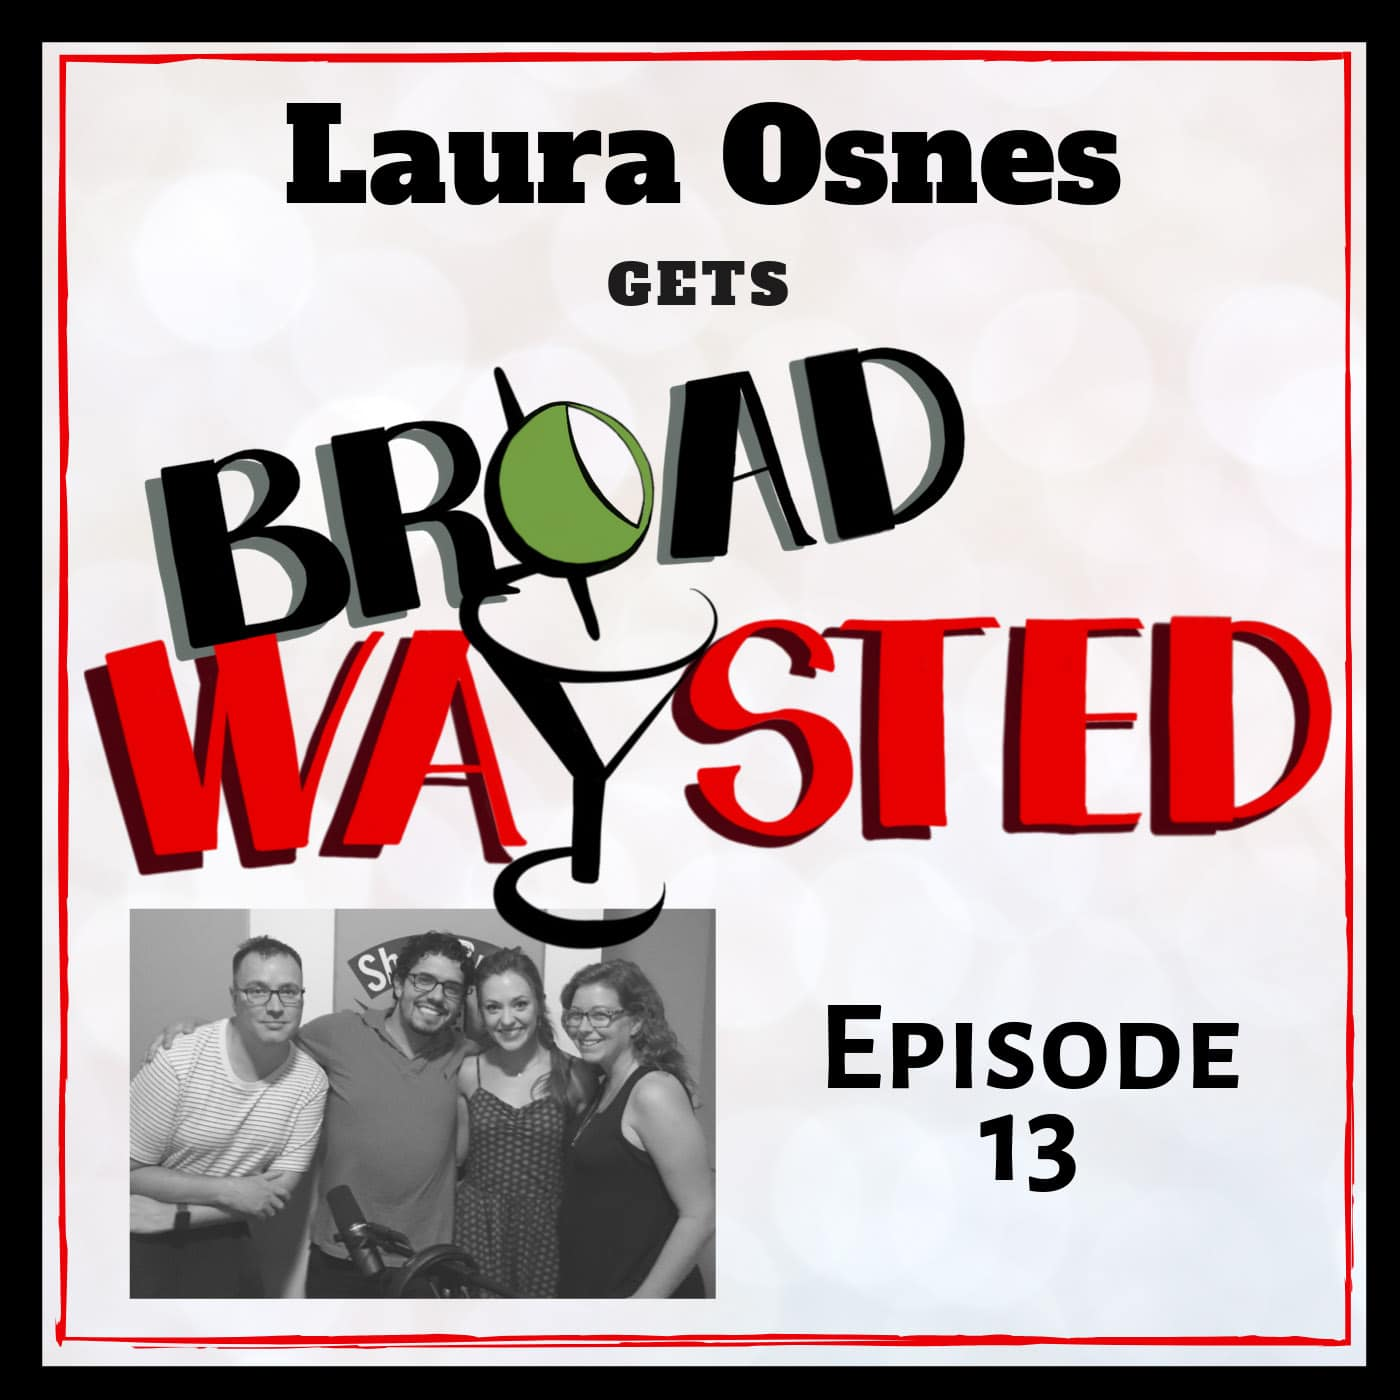 Broadwaysted Ep 13 Laura Osnes